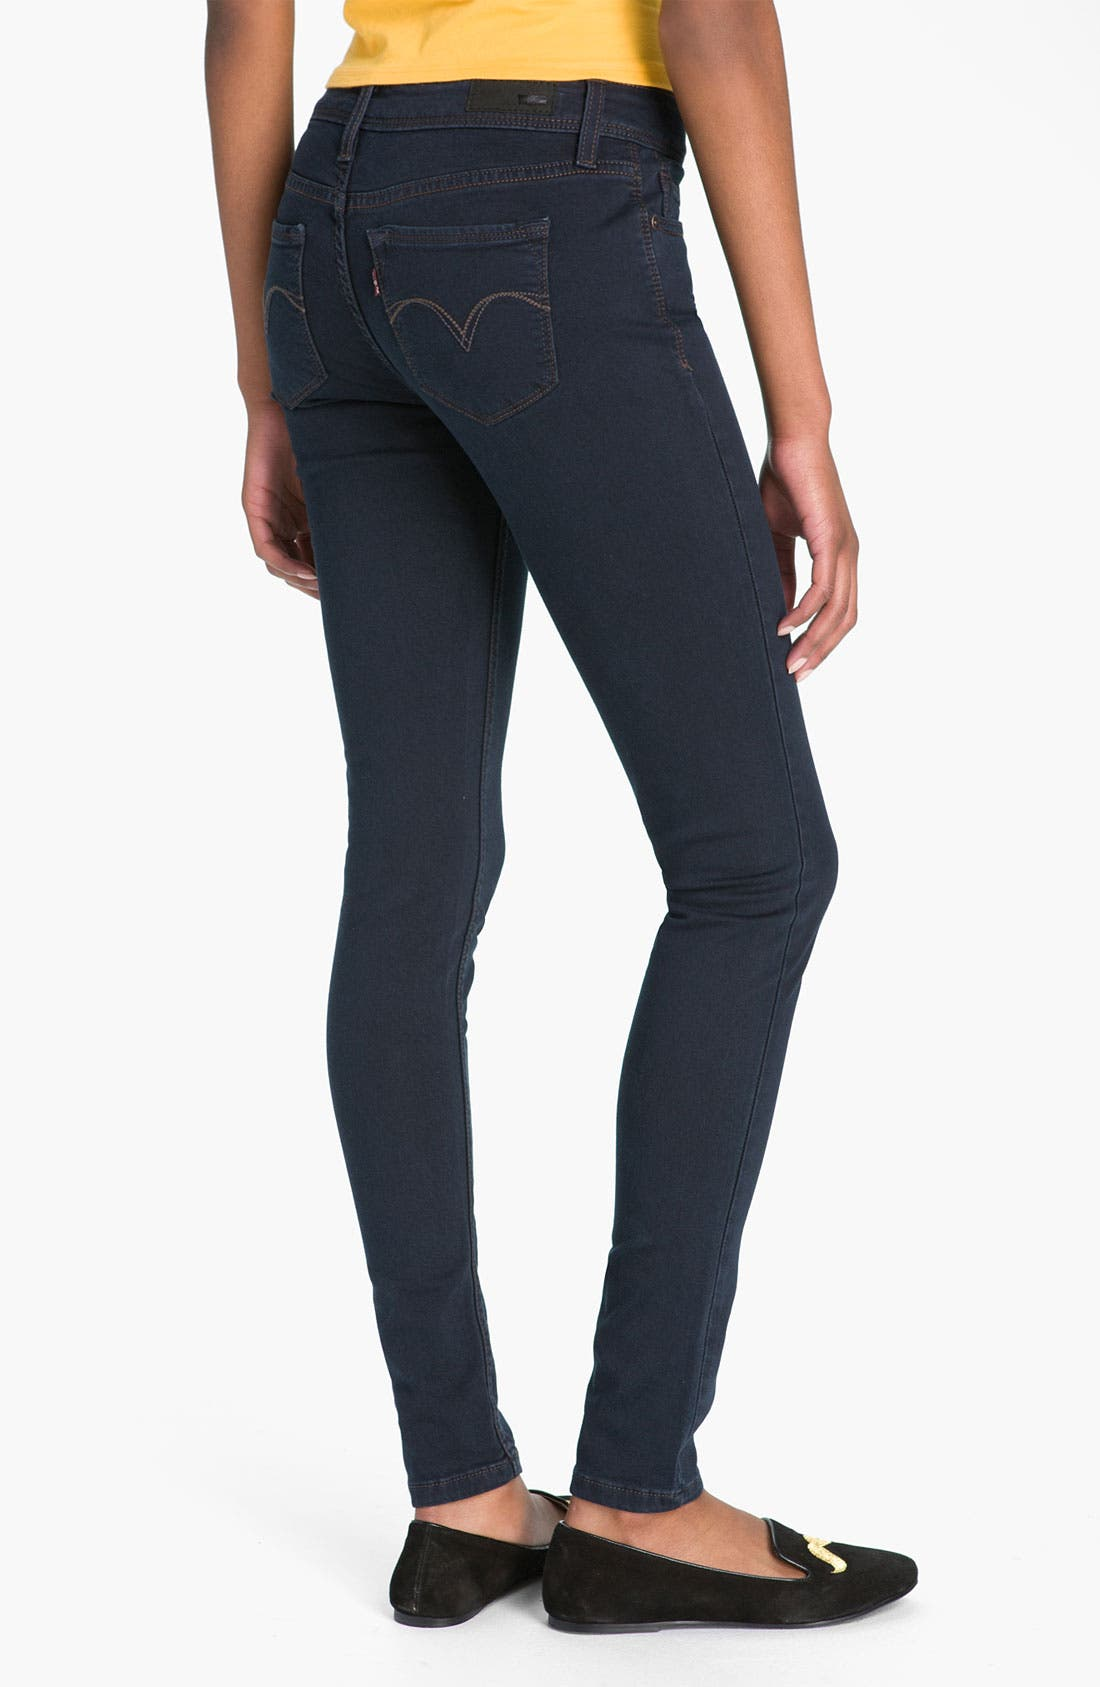 Alternate Image 1 Selected - Levi's Denim Leggings (Indigo Heart Sateen)